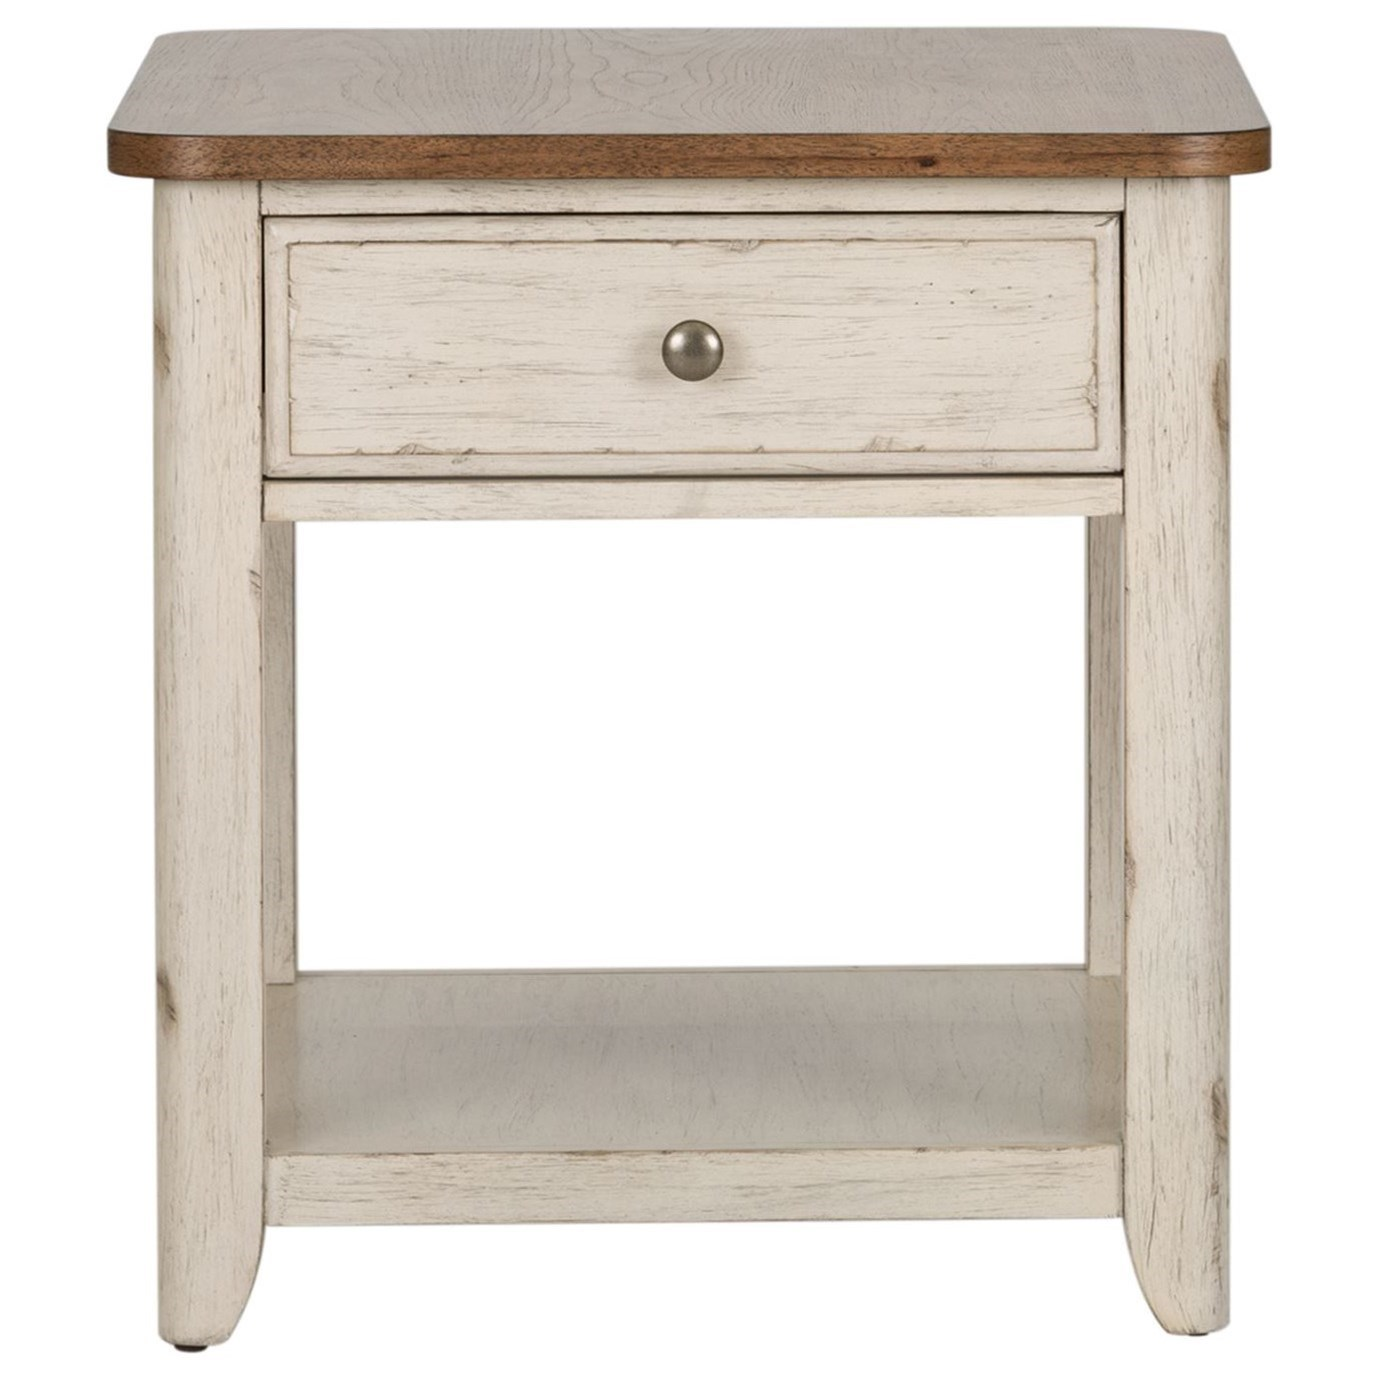 Farmhouse Reimagined End Table by Libby at Walker's Furniture